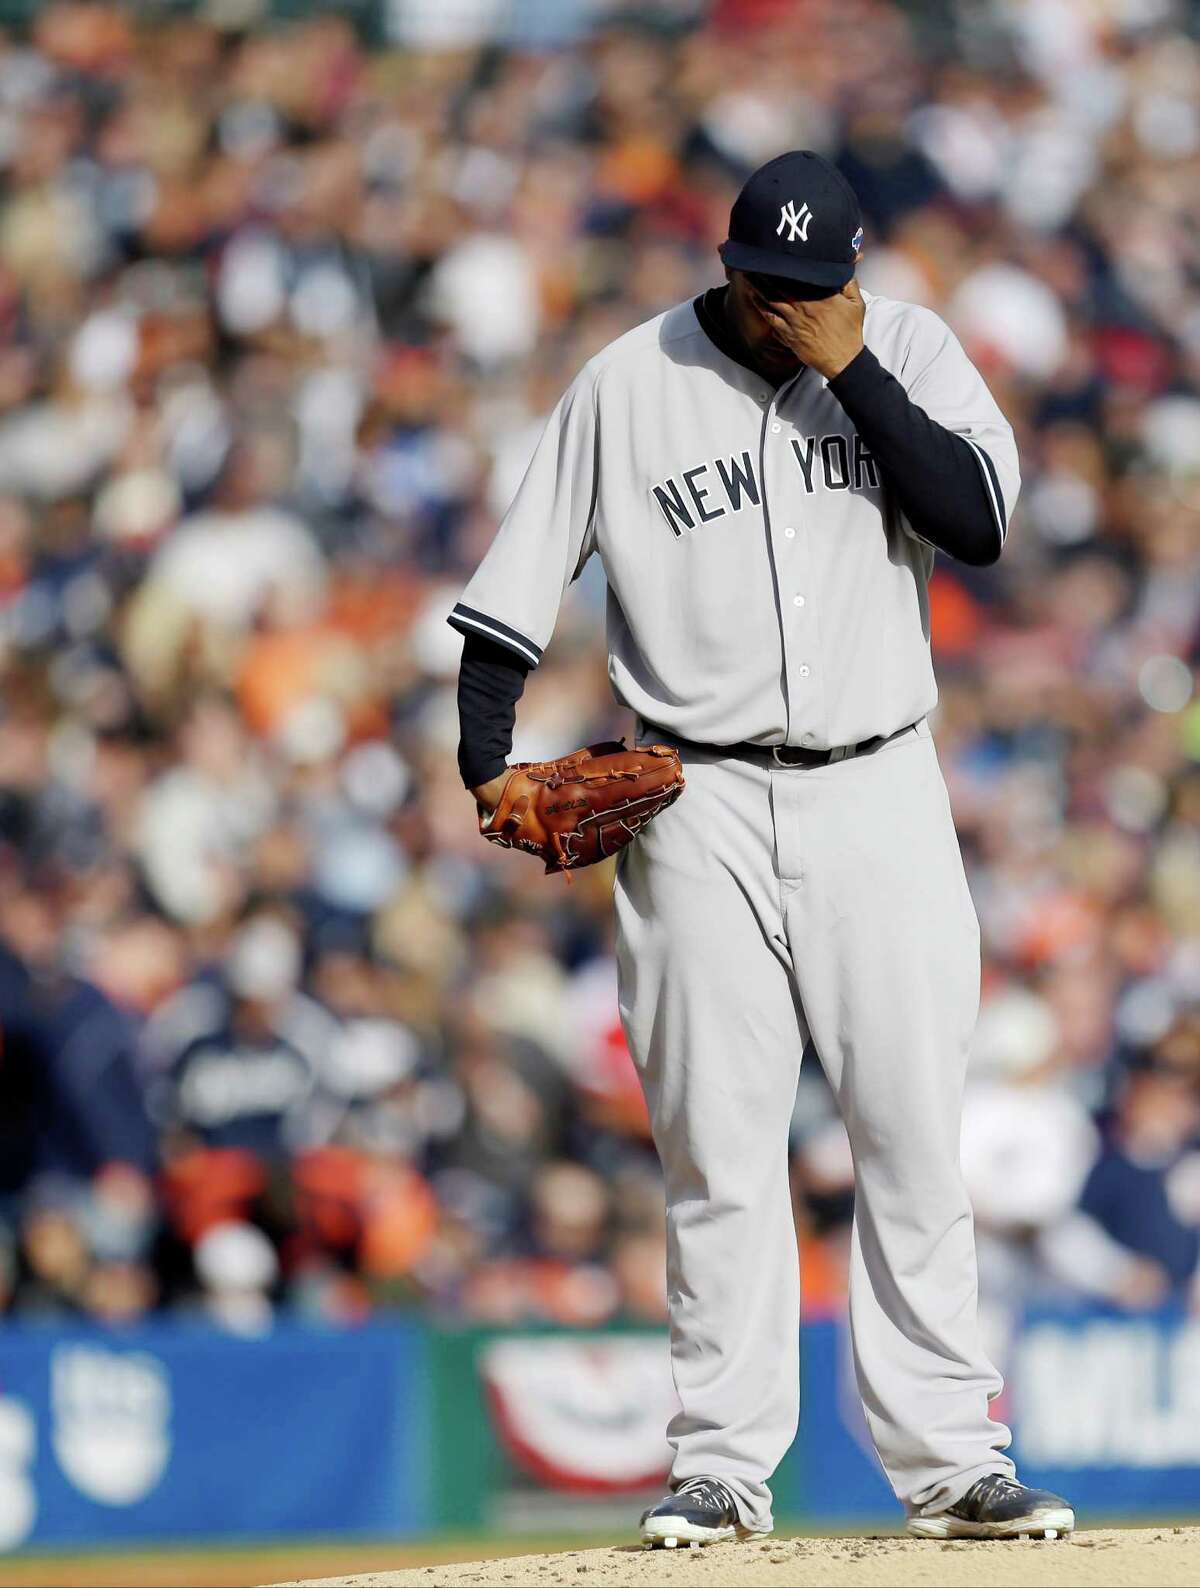 New York Yankees' CC Sabathia wipes his face after Detroit Tigers' Omar Infante scored in the first inning during Game 4 of the American League championship series Thursday, Oct. 18, 2012, in Detroit.